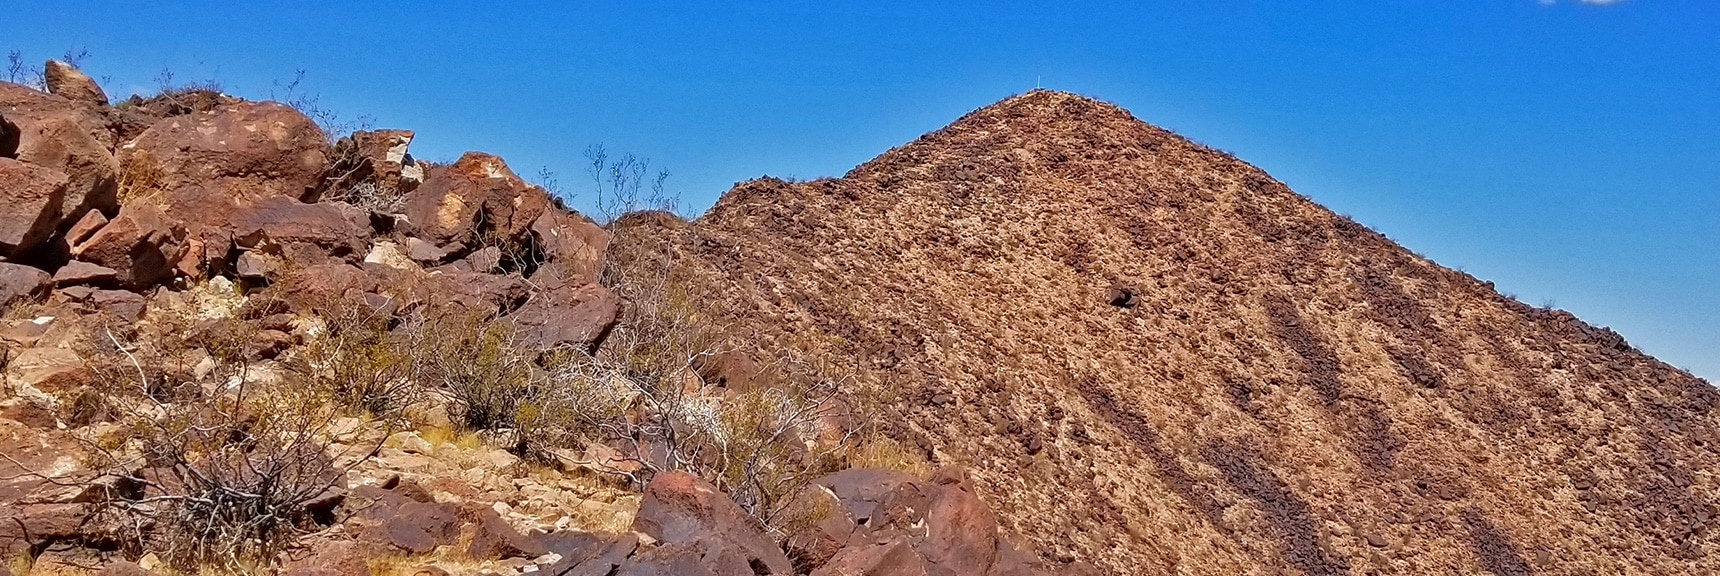 Summit Viewed from Part Way Down the South Ridge | Lava Butte | Lake Mead National Recreation Area, Nevada